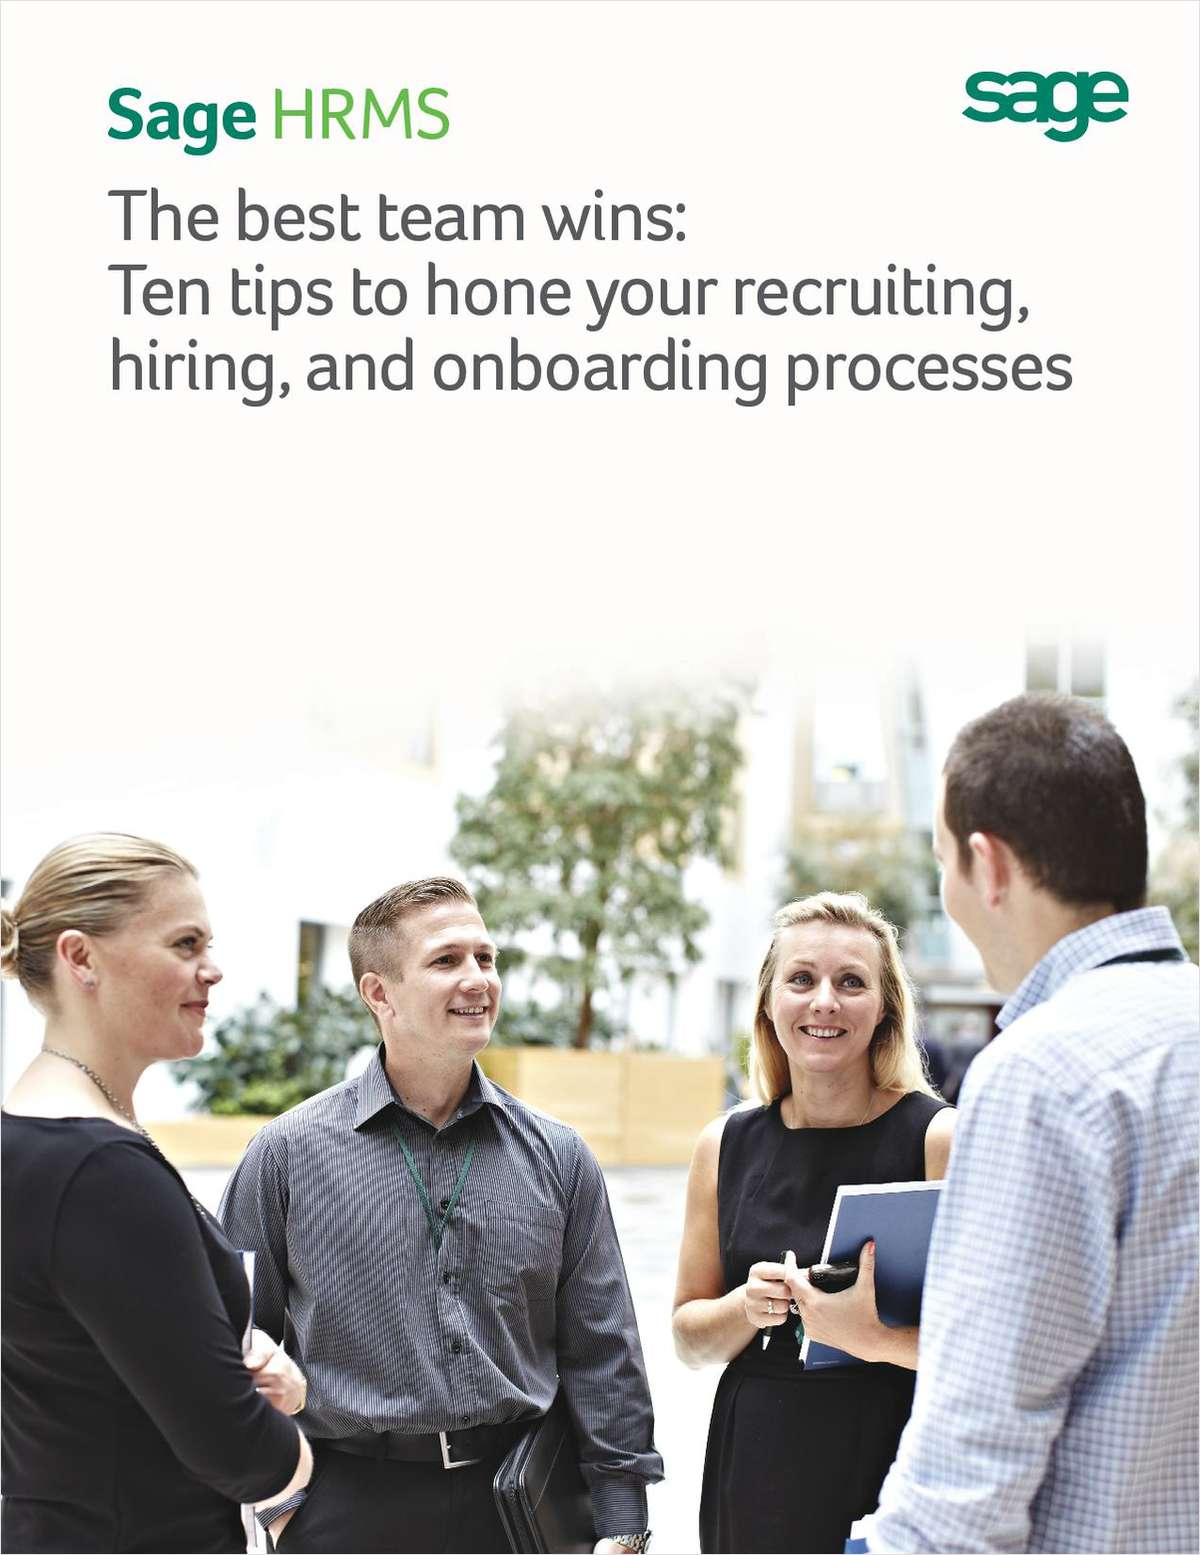 Ten Tips to Hone Your Recruiting, Hiring, and Onboarding Processes